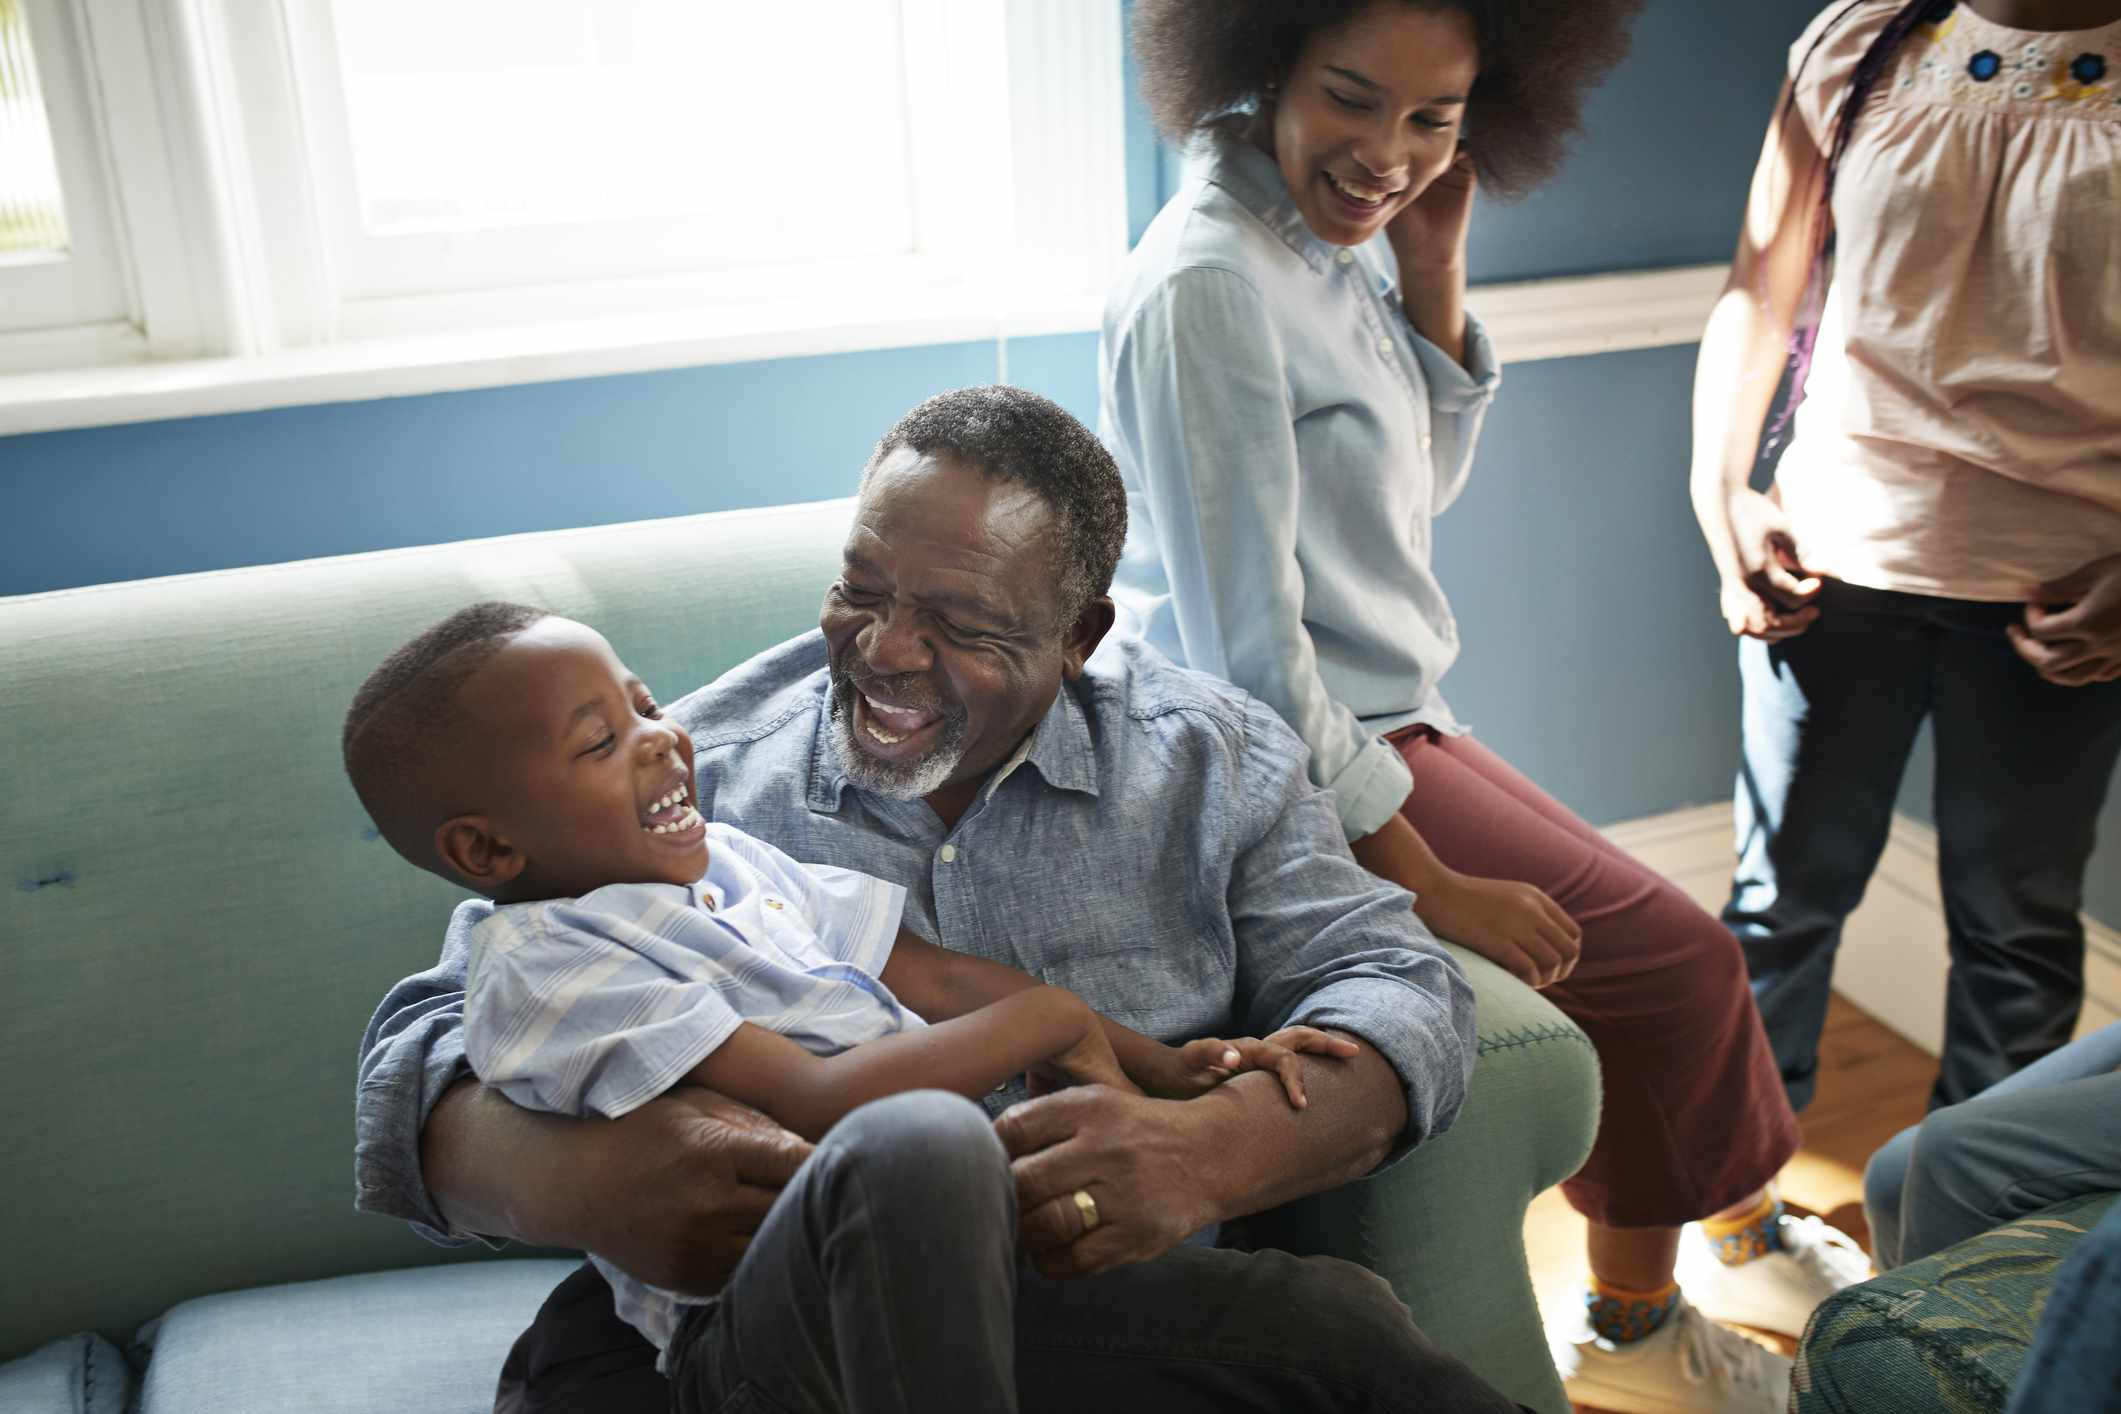 Happy man playing with boy on sofa at home